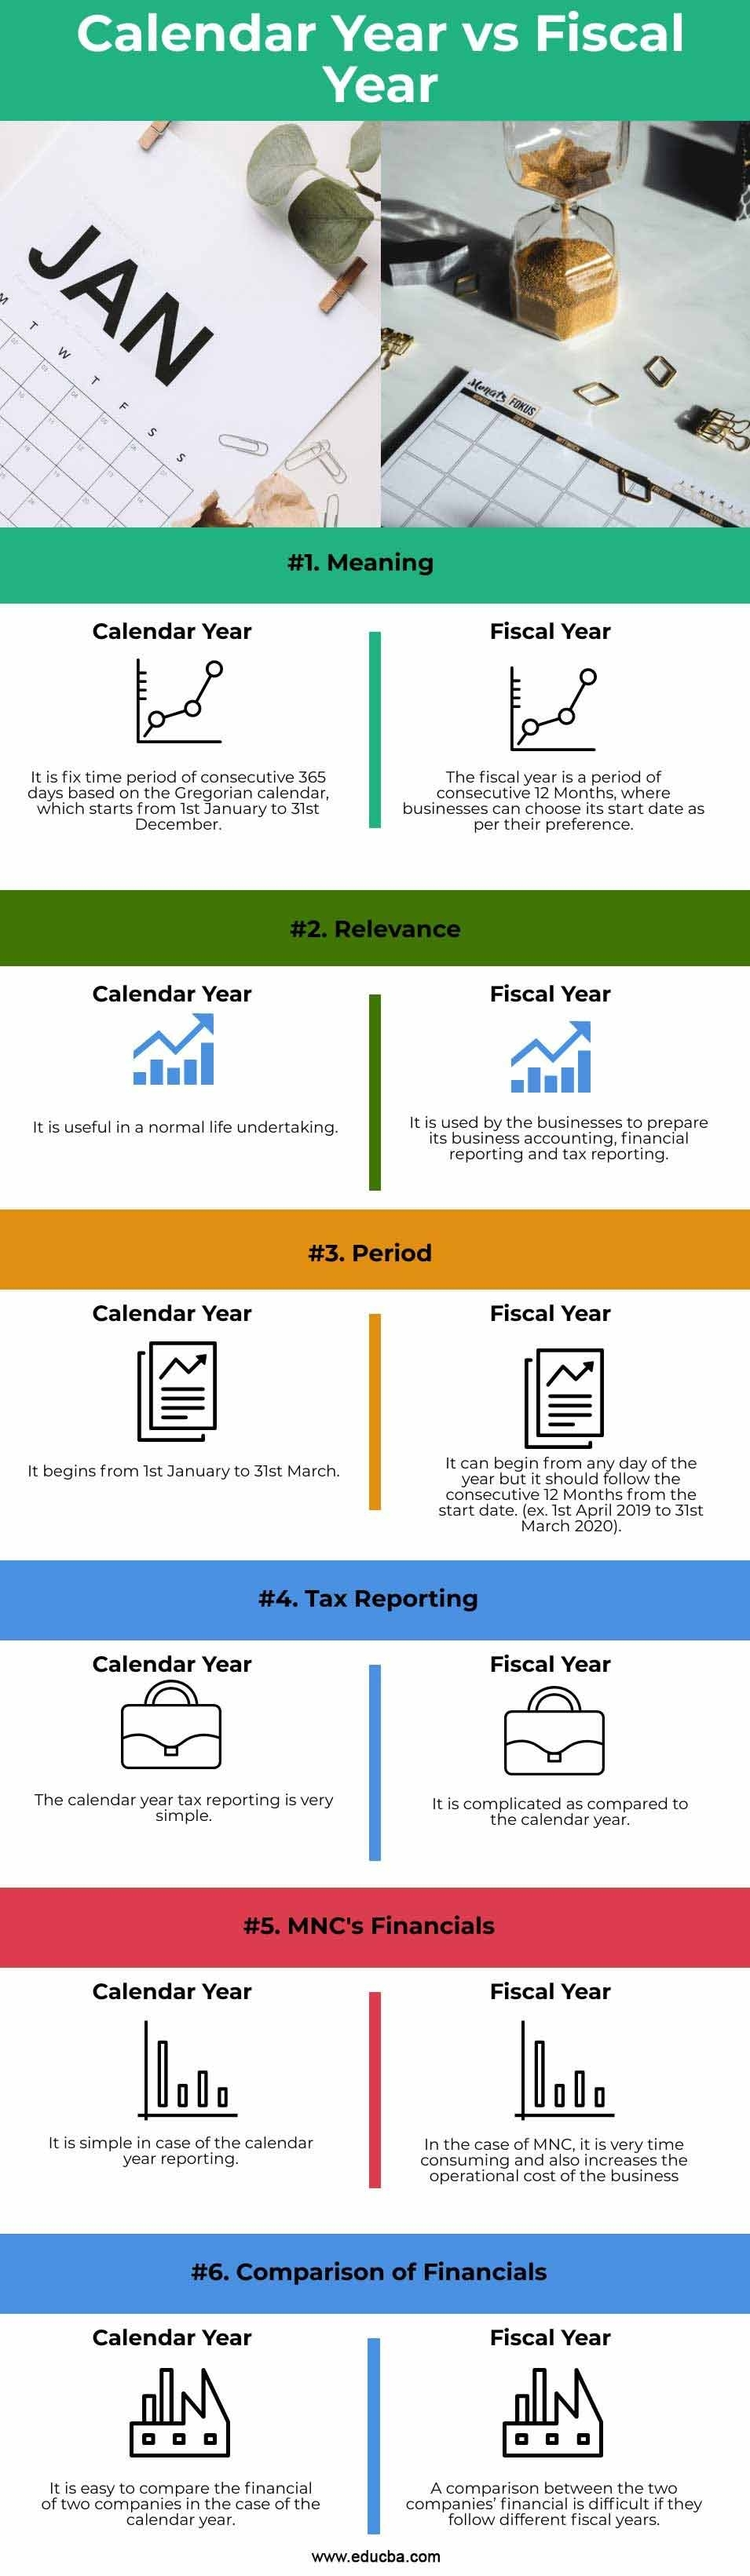 Calendar Year Vs Fiscal Year | Top 6 Differences You Should Know